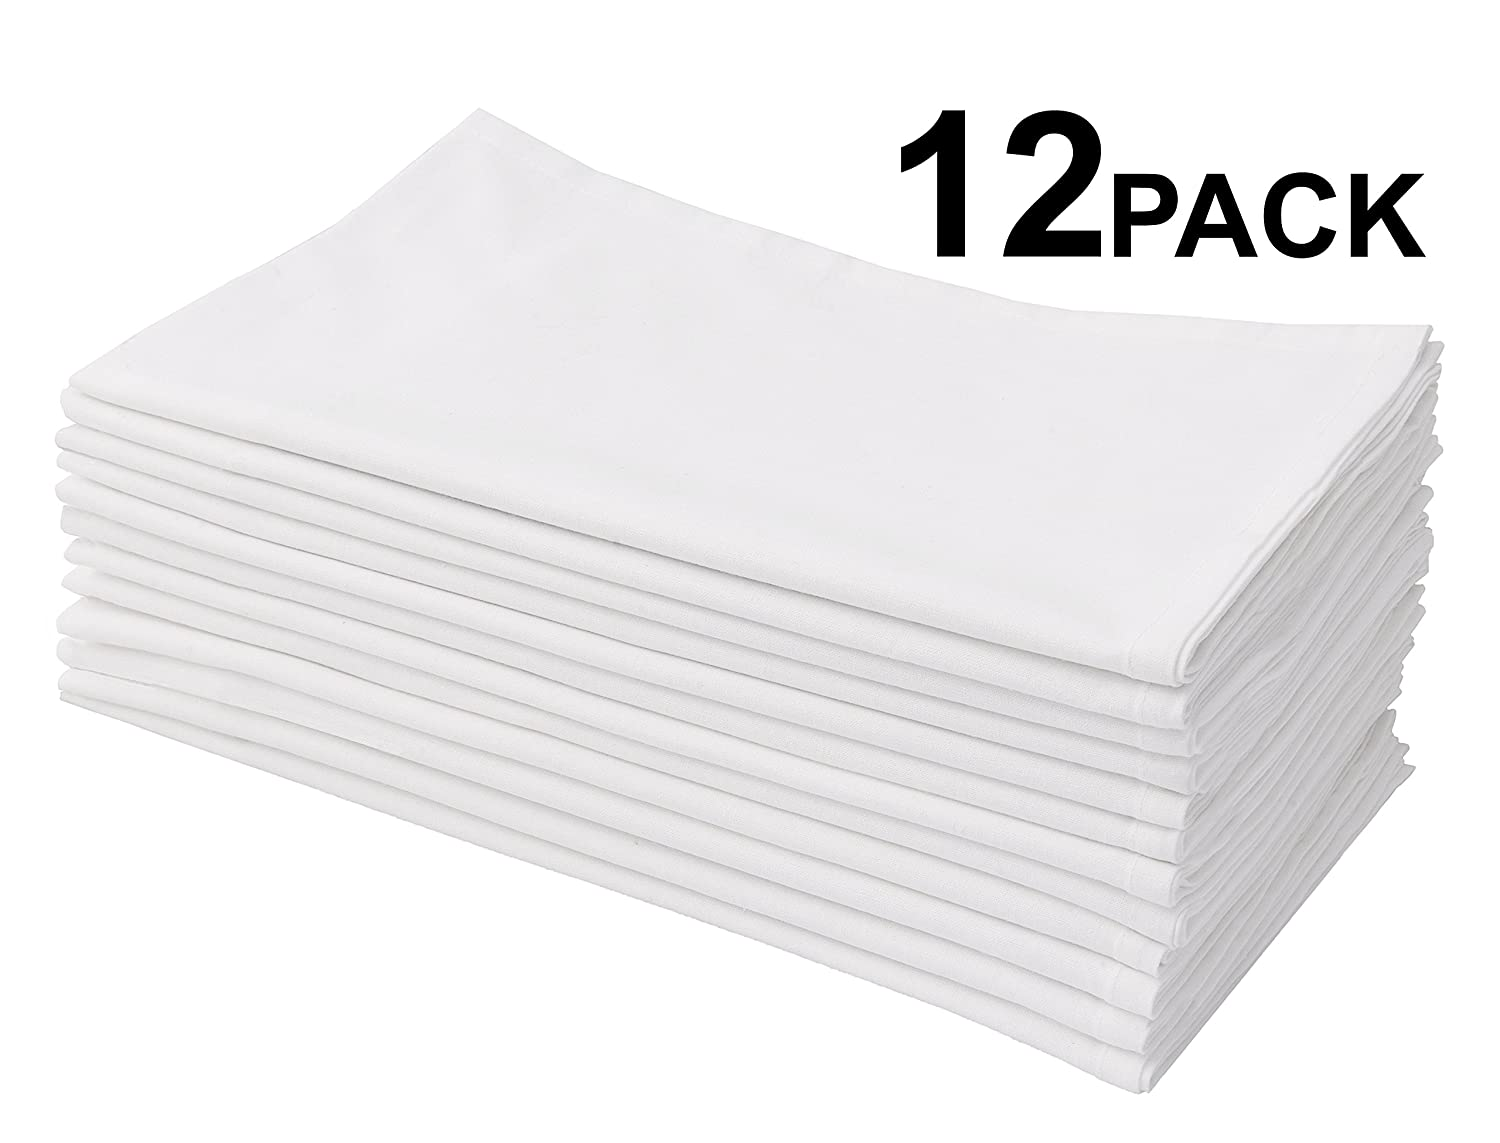 Cotton Craft 12 Pack Flour Sack Kitchen Towel Napkins - 100% Pure Ringspun Cotton - White - 28x28 Heavy Weight 900 Gram / 32 Ounce High Quality Woven Low Lint Construction - Multi Purpose & Versatile